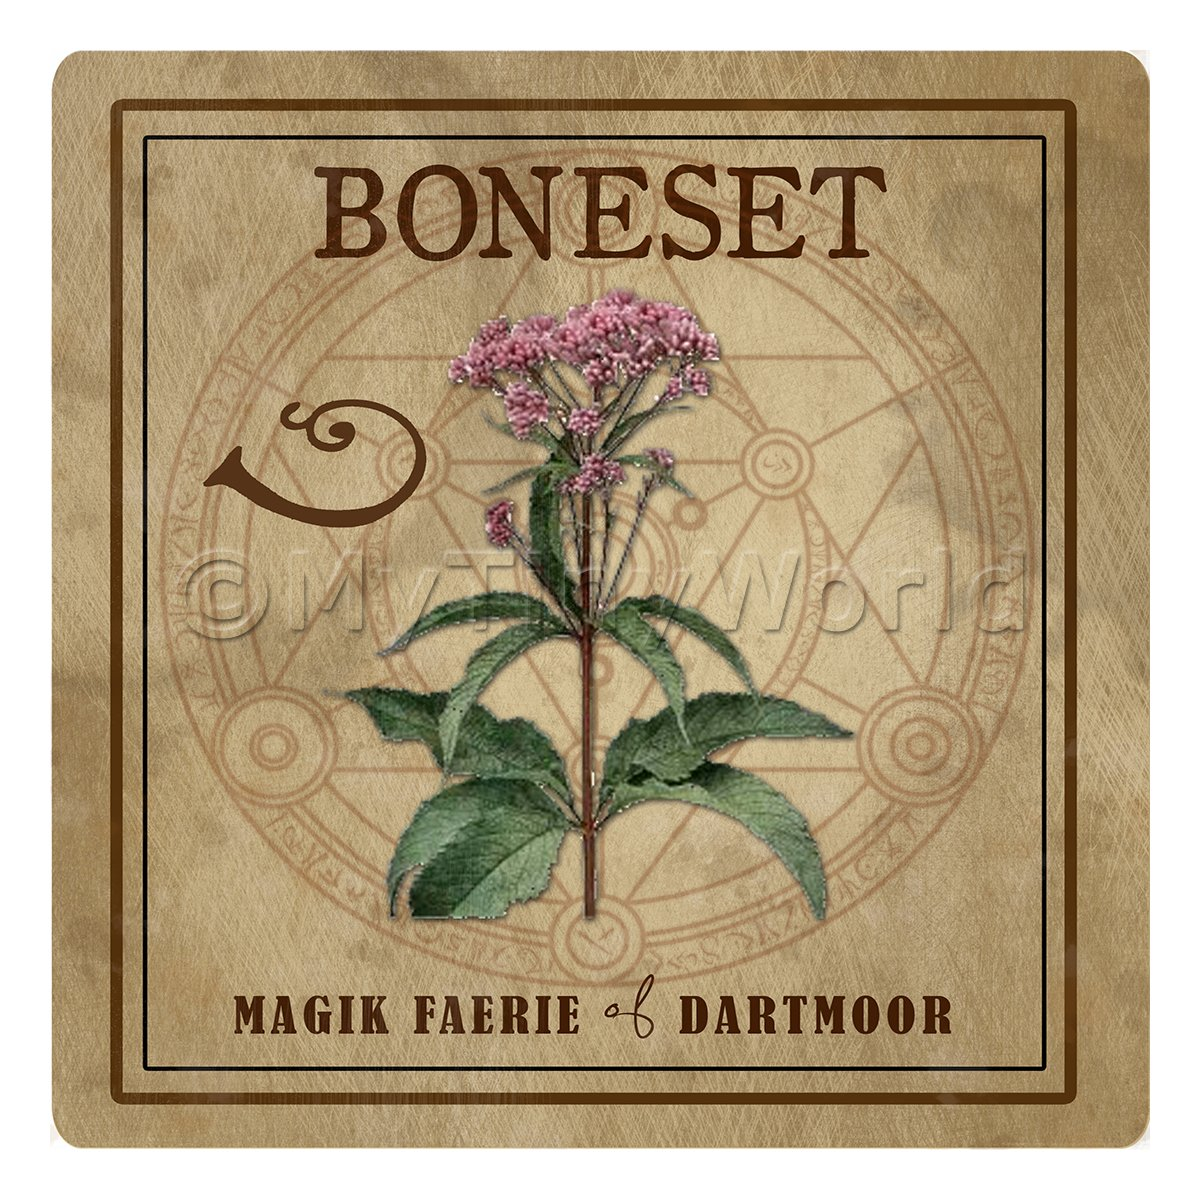 Dolls House Herbalist/Apothecary Square Boneset Herb Label